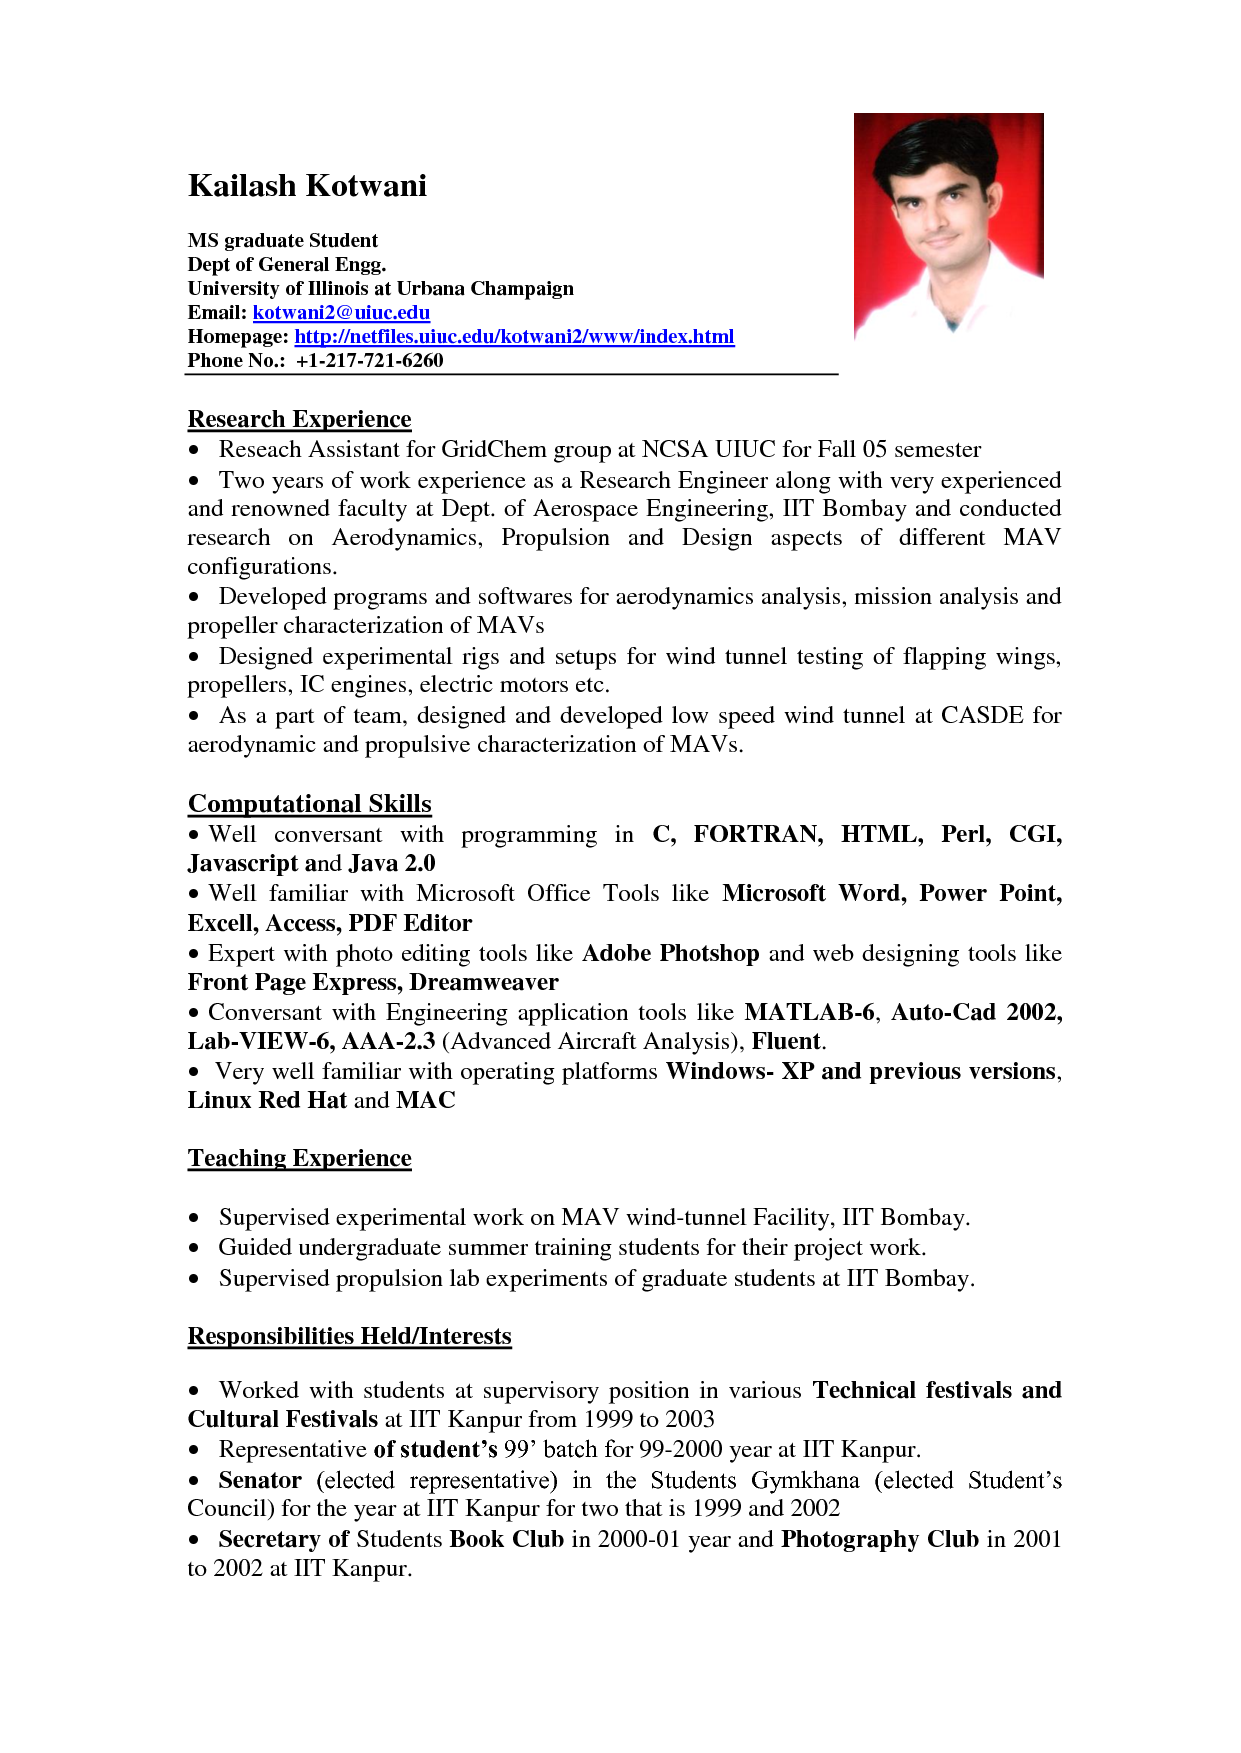 high school student resume examples no work experience no work experience resume content how to write a resume resume - How To Write Work Experience On A Resume